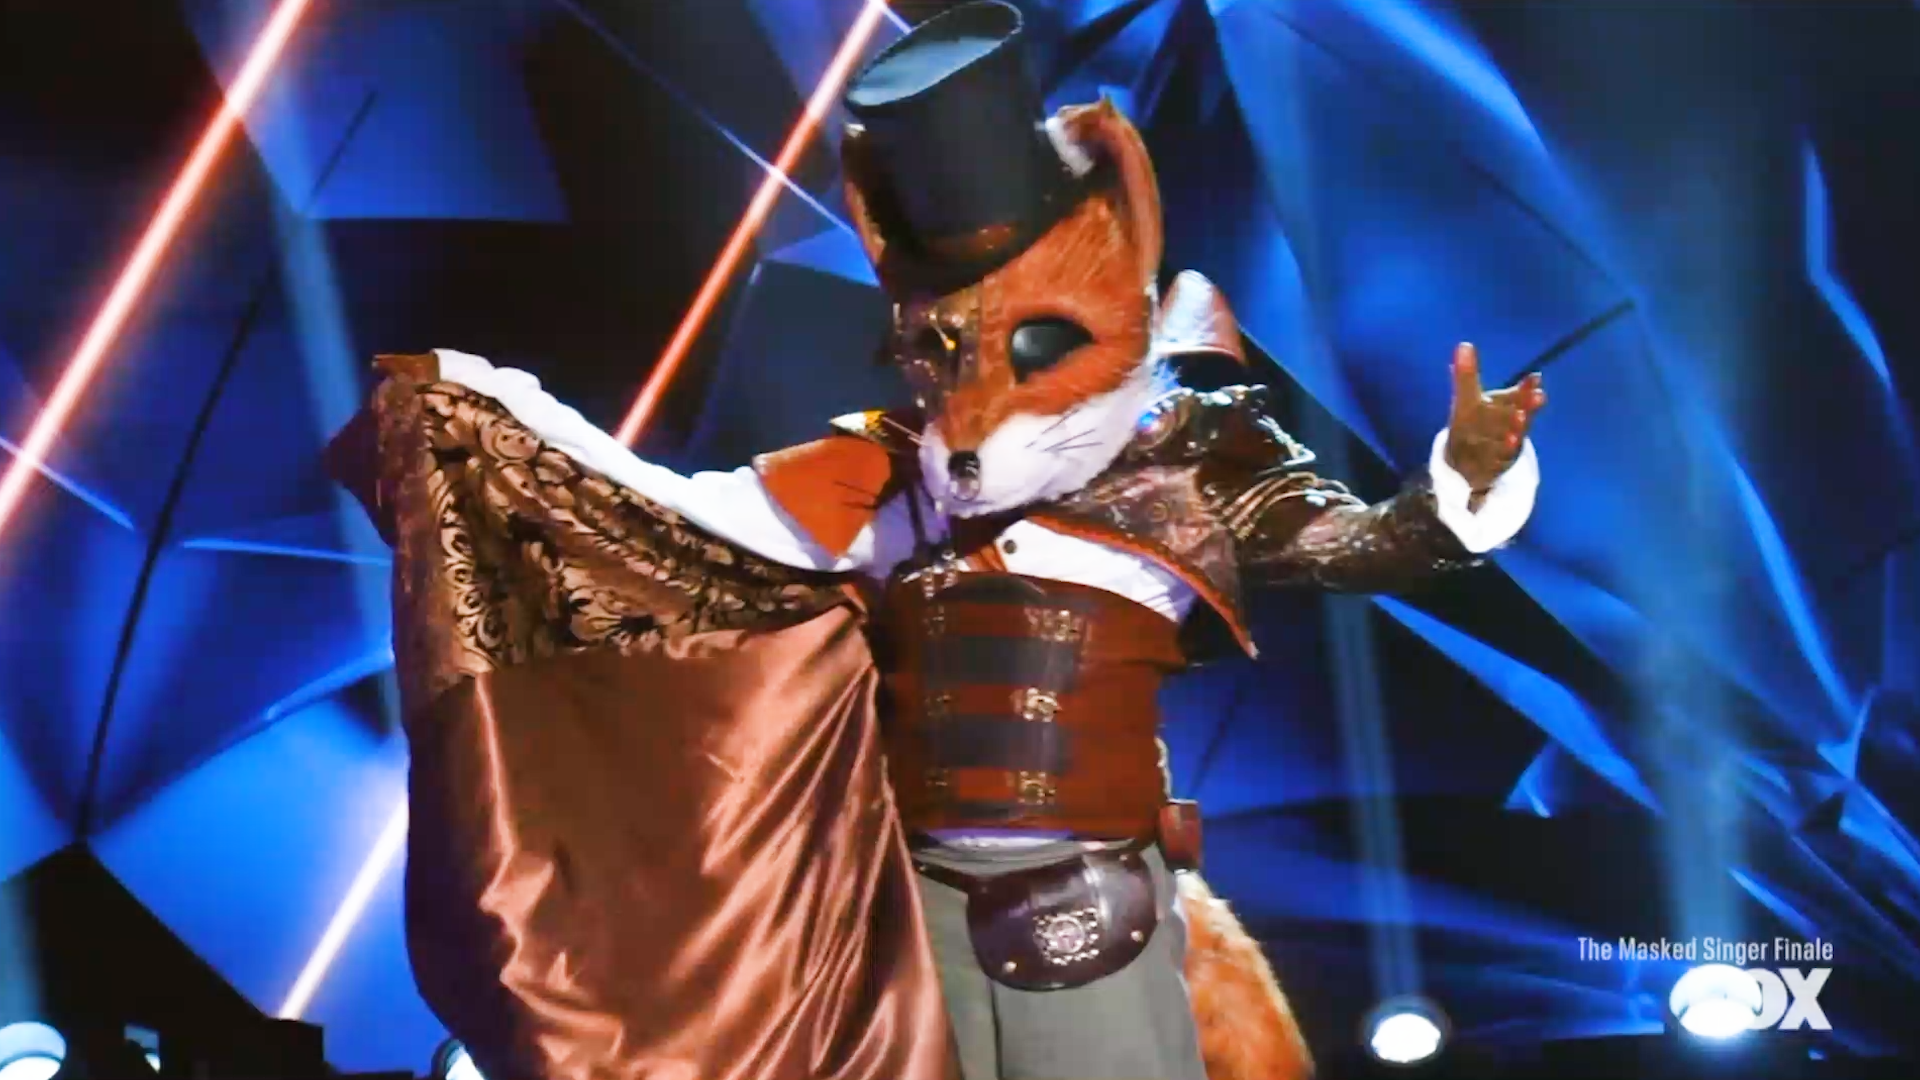 The Fox Wins 'The Masked Singer' And He's Crazy Good On 'Try A Little Tenderness'